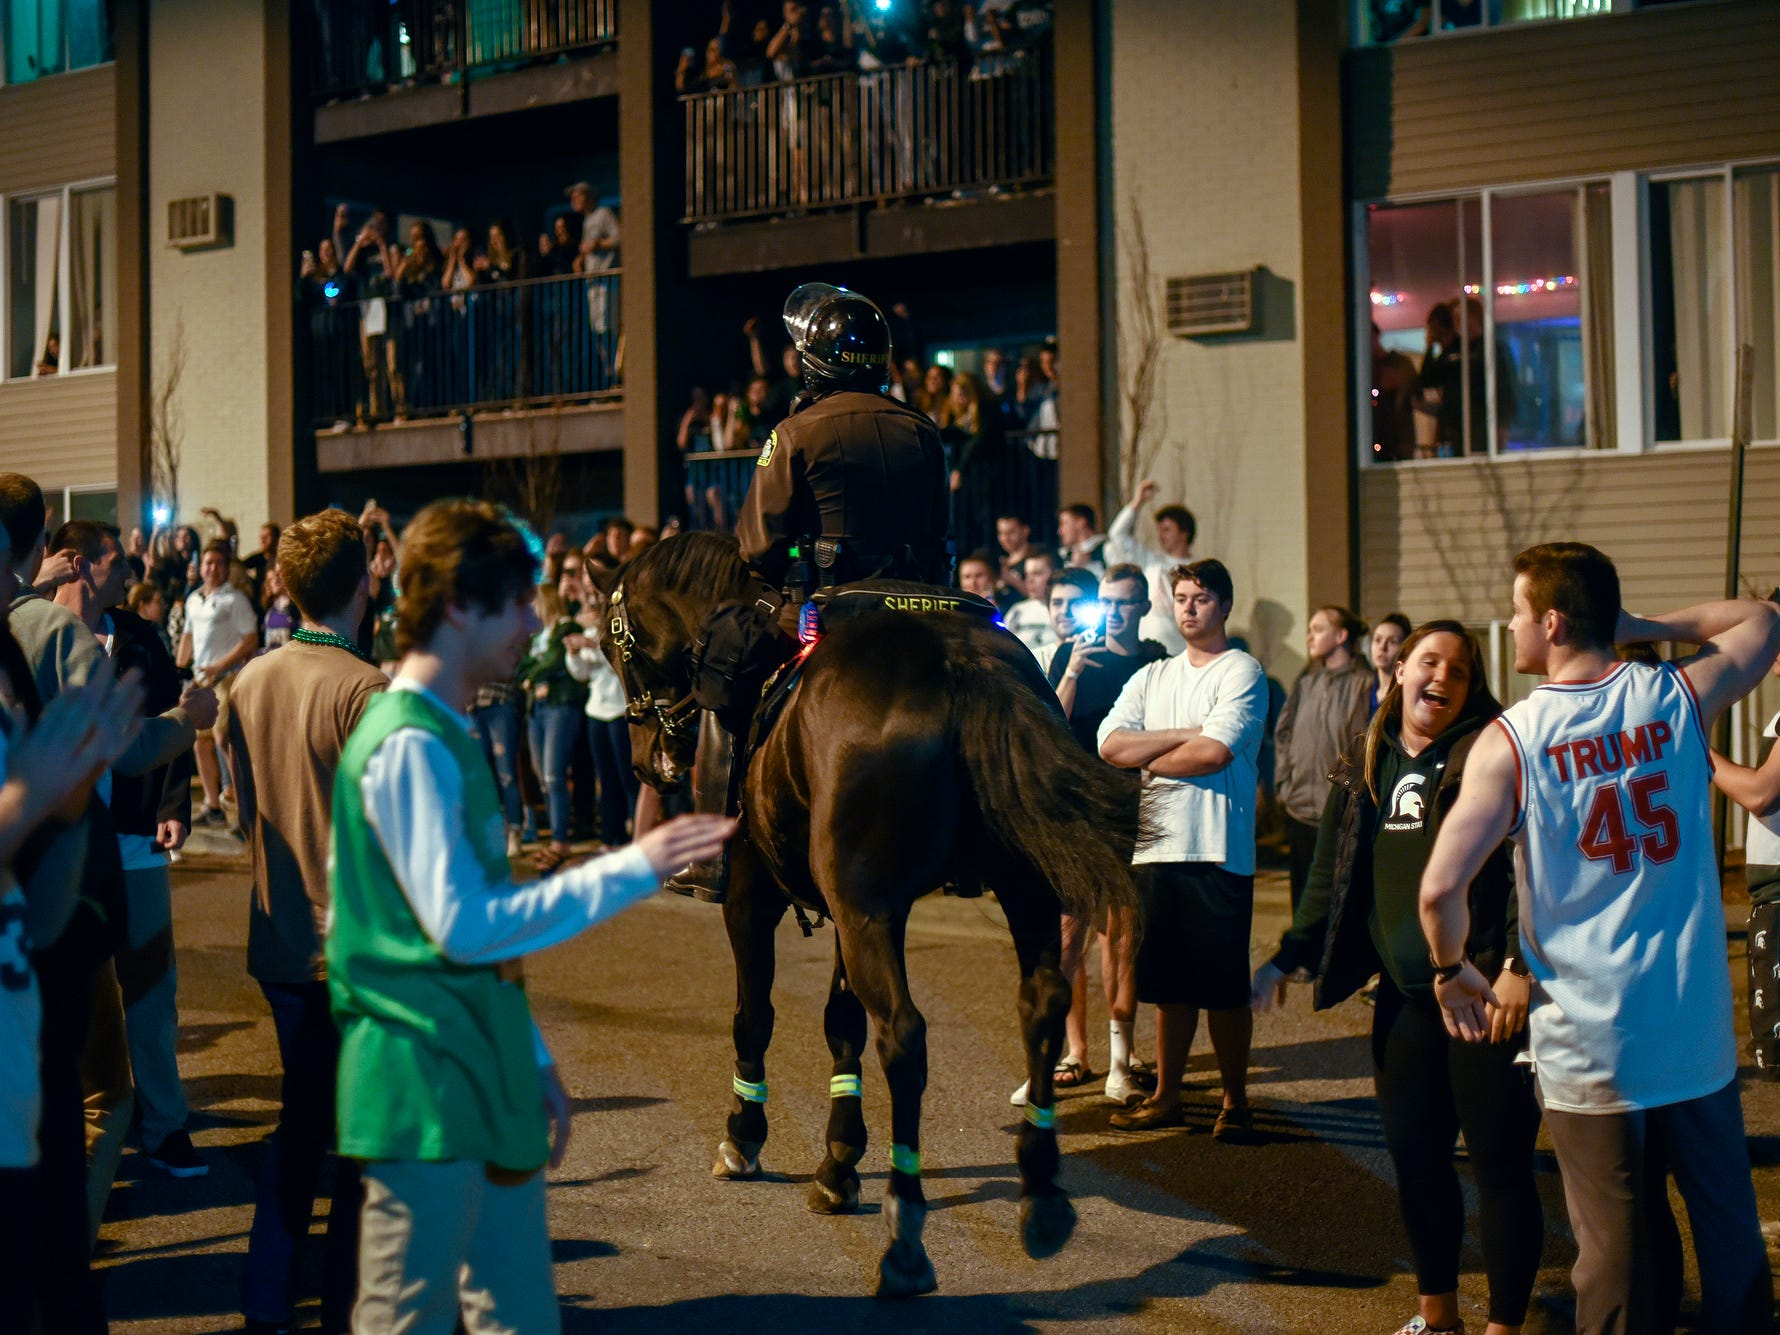 A police on horses make their way through the crowd at Waters Edge Drive and River Street after the Michigan State Spartans' Final Four loss to Texas Tech on Saturday, April 6, 2019, in East Lansing.